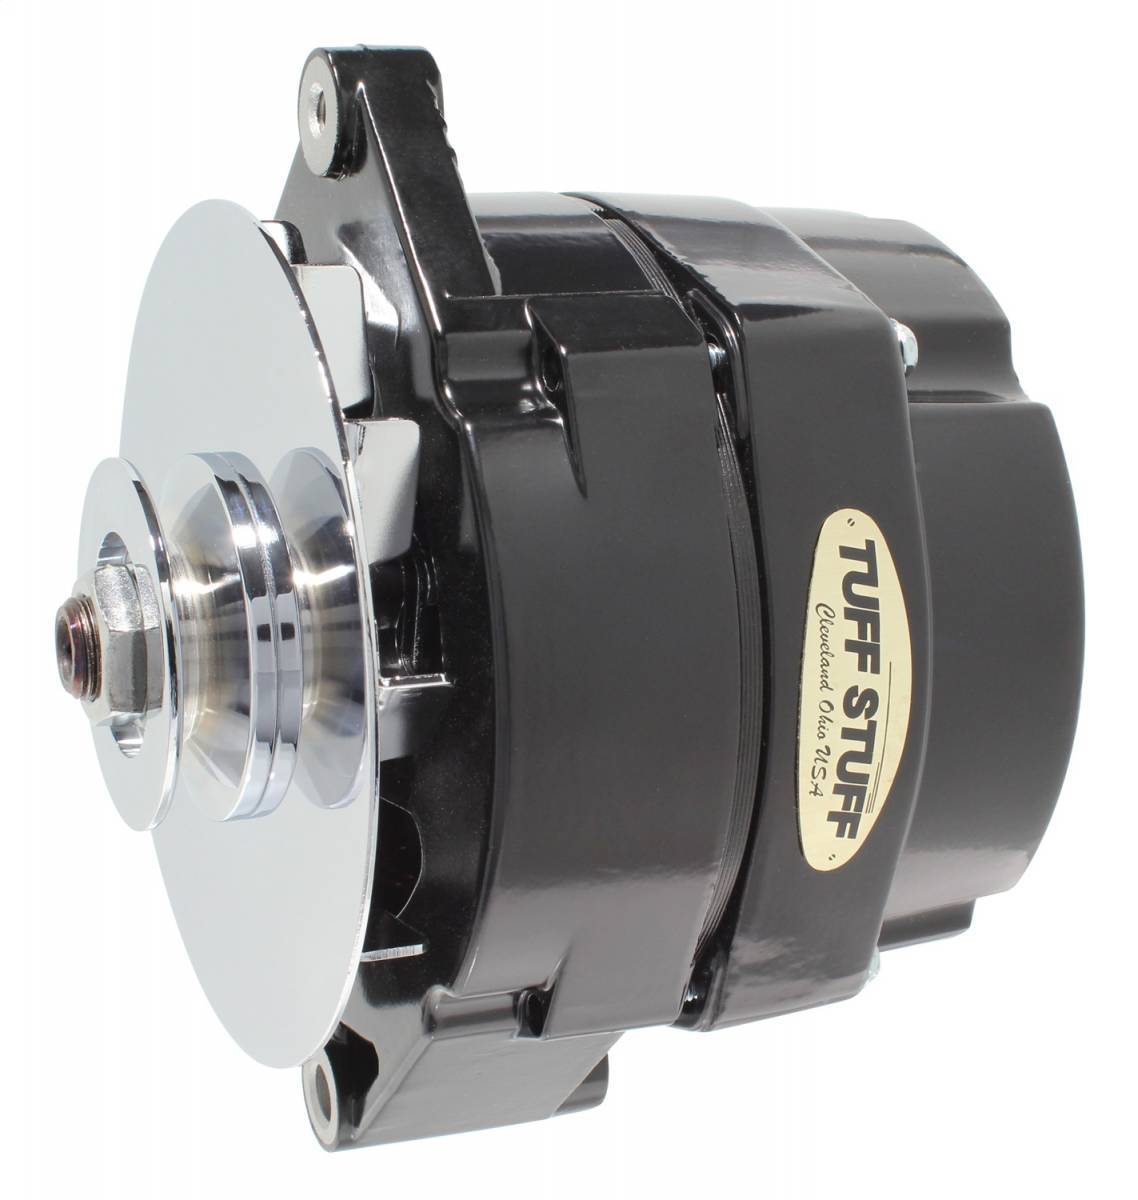 Tuff Stuff Performance - Alternator 80 AMP OEM Wire 10si Case V Groove Pulley External Regulator Black Must Be Used With An External Solid State Voltage Regulator 7102NF